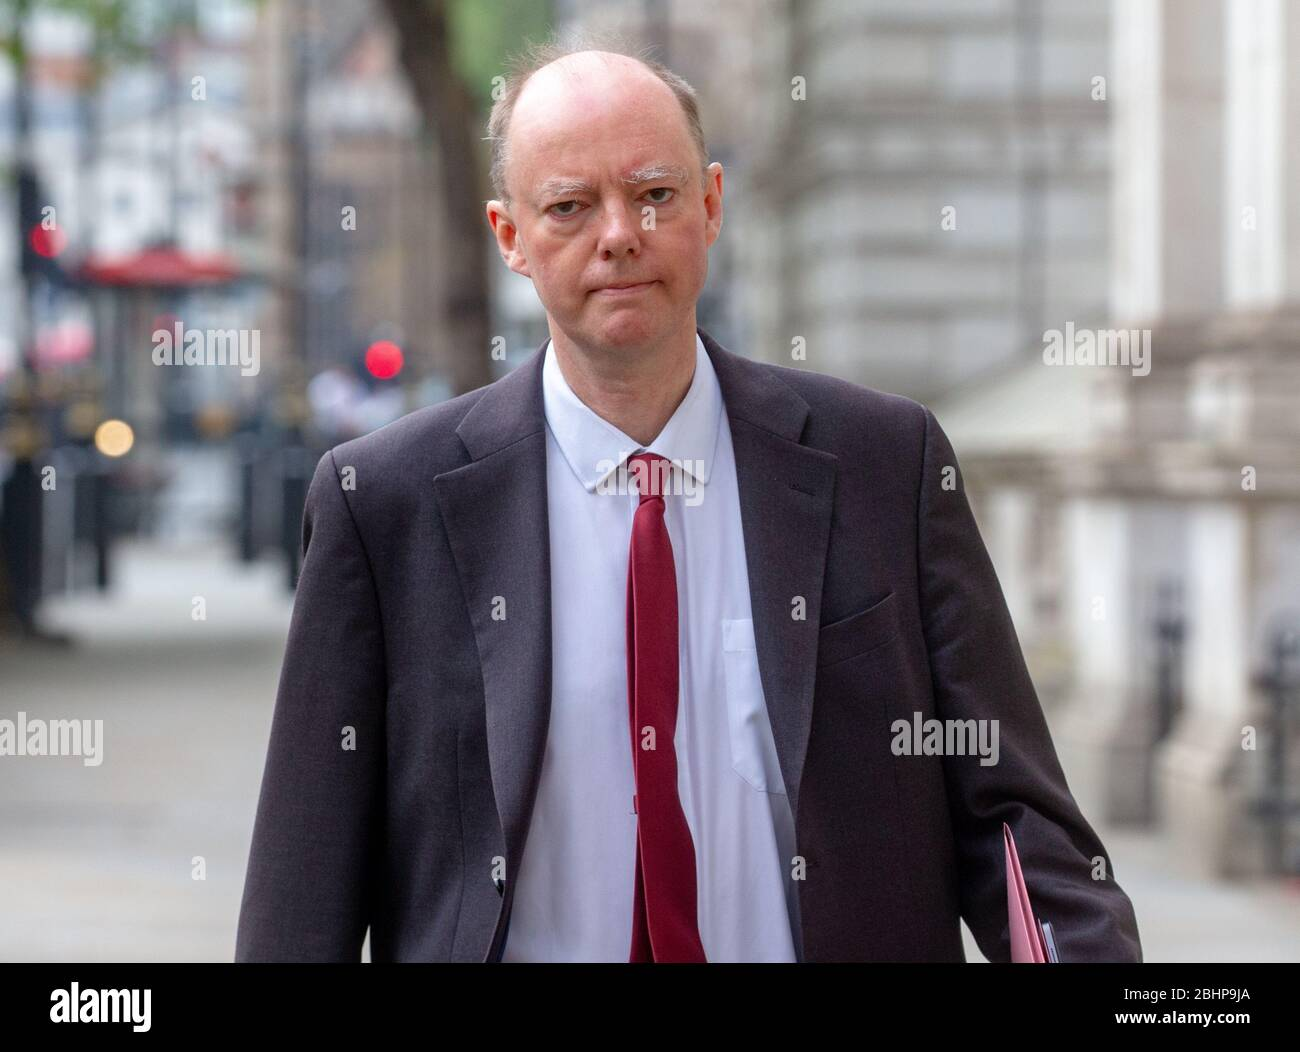 London, UK. 27th Apr, 2020. Chris Whitty, Chief Medical Officer and Chief Medical adviser to the UK Government, arrives at Downing Street for a Covid-19 meeting chaired by Boris Johnson. Credit: Mark Thomas/Alamy Live News Stock Photo